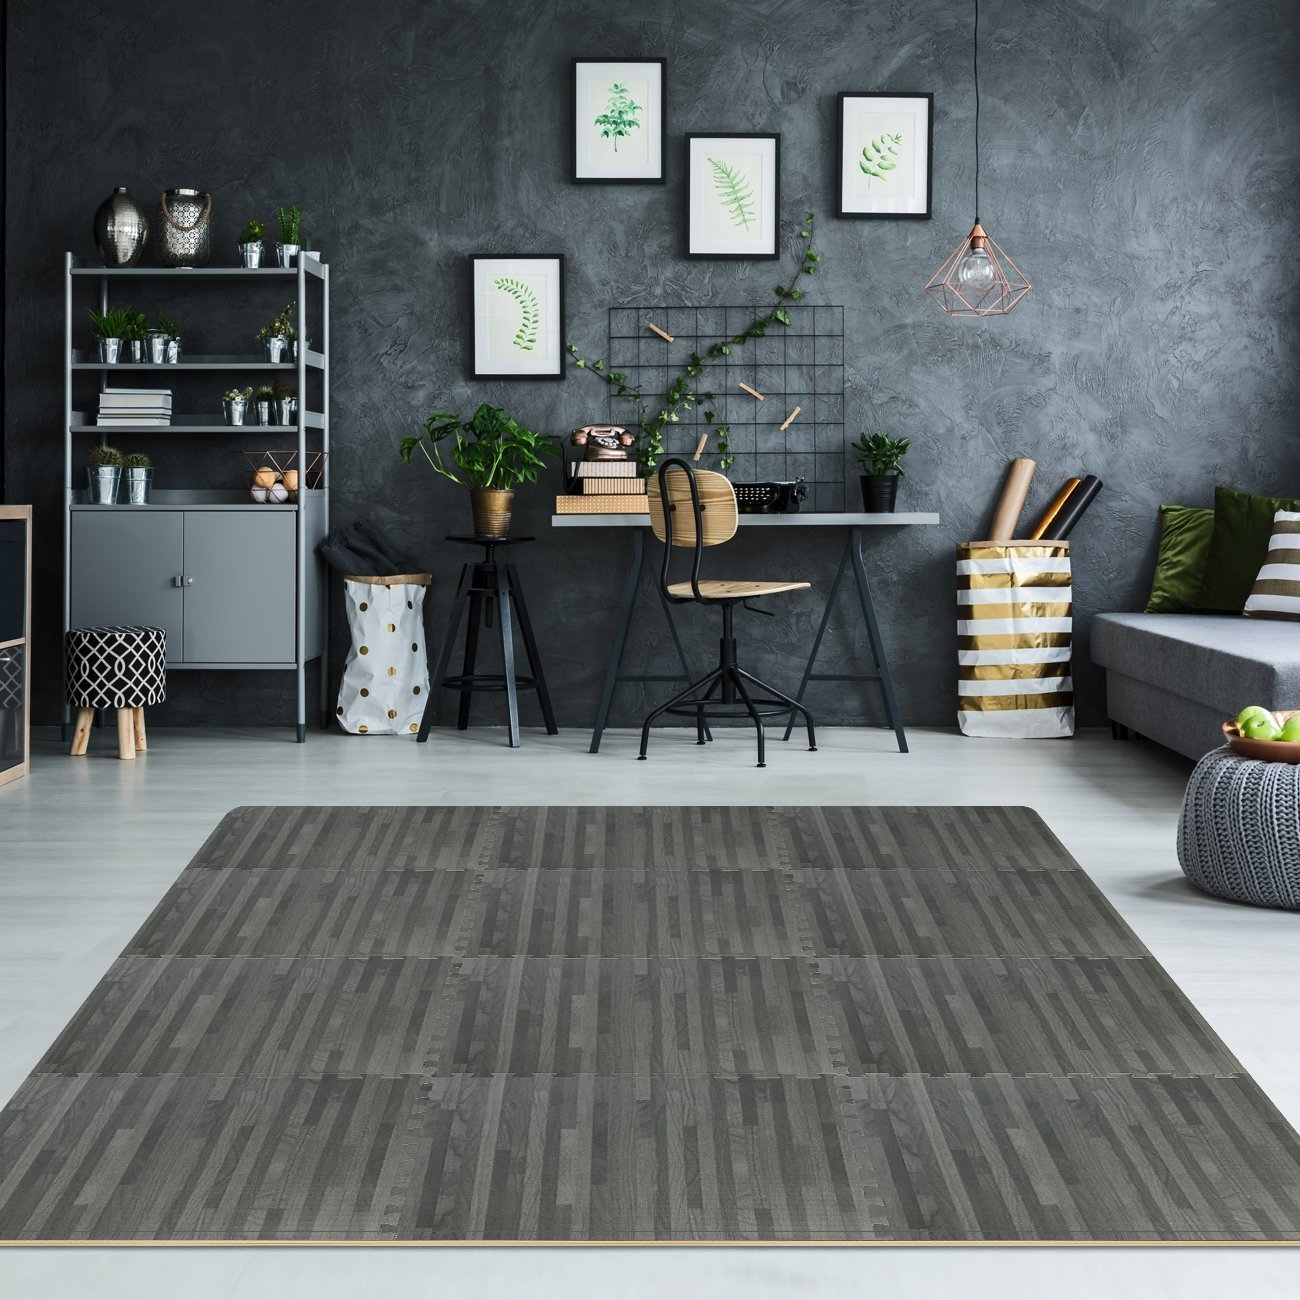 Sorbus Wood Floor Mats Foam Interlocking Wood Mats Each Tile 4 Square Feet 3/8-Inch Thick Puzzle Wood Tiles with Borders – for Home Office Playroom Basement (6 Tiles 24 Sq ft, Wood Grain - Gray) by Sorbus (Image #3)